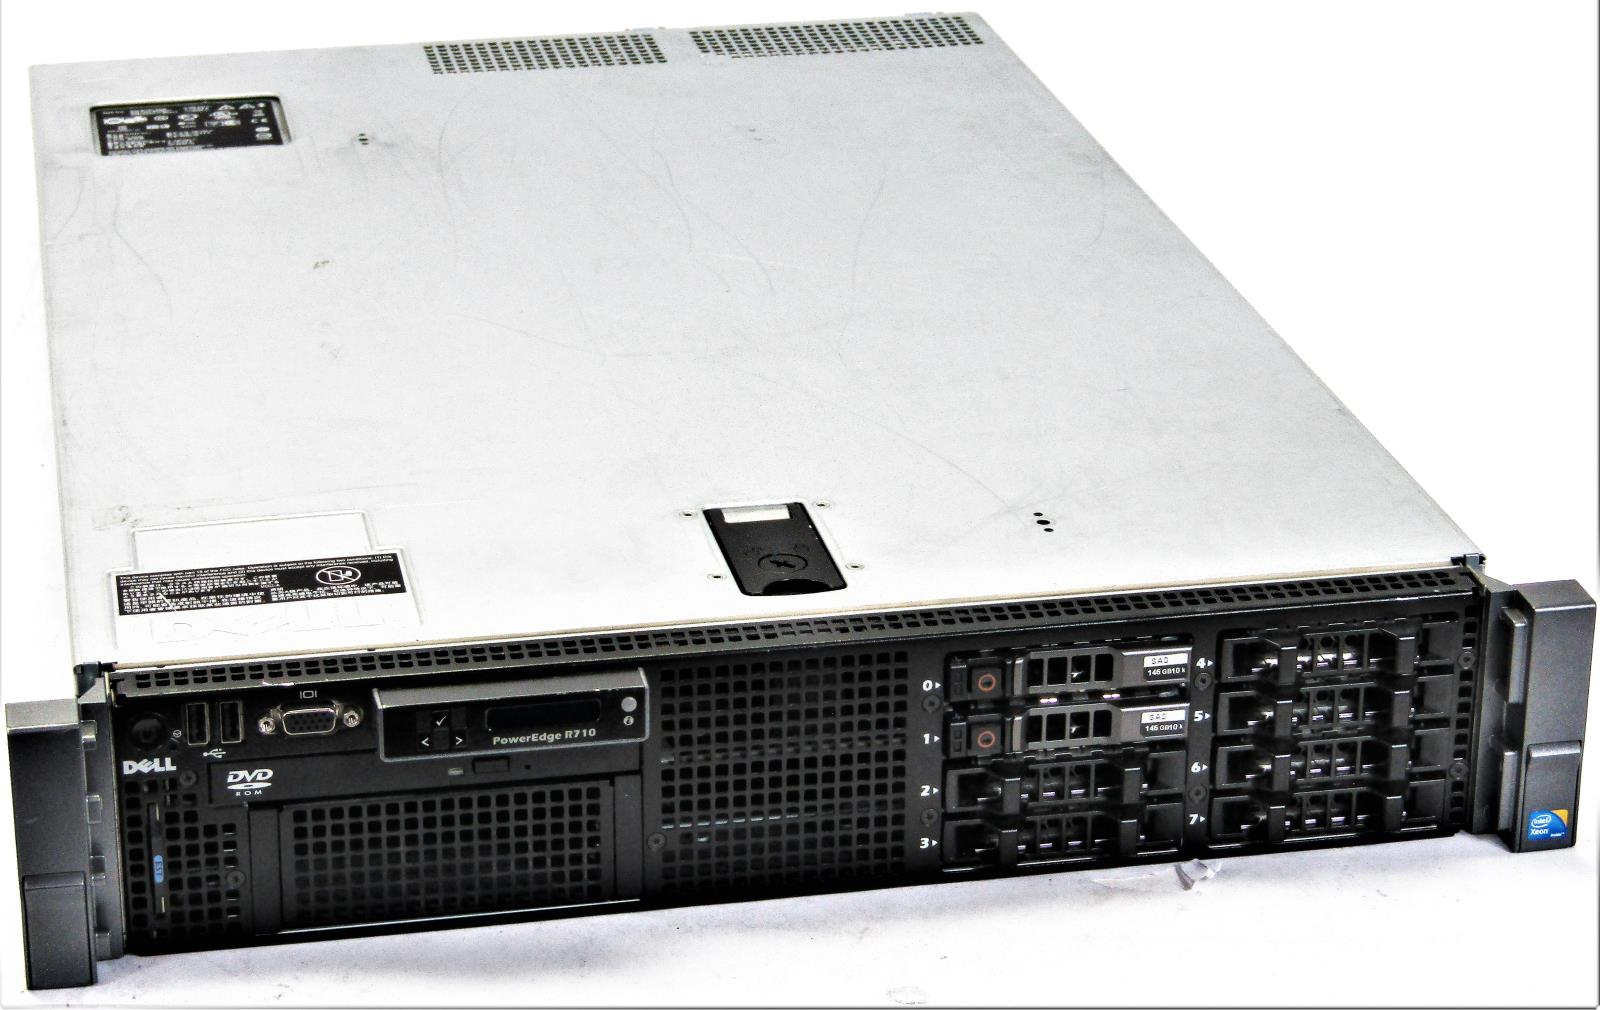 Details about Dell PowerEdge R710 Server - 2U | 2x 2 67GHz X5650 Xeon |  48gb DDR3 | DVD-ROM